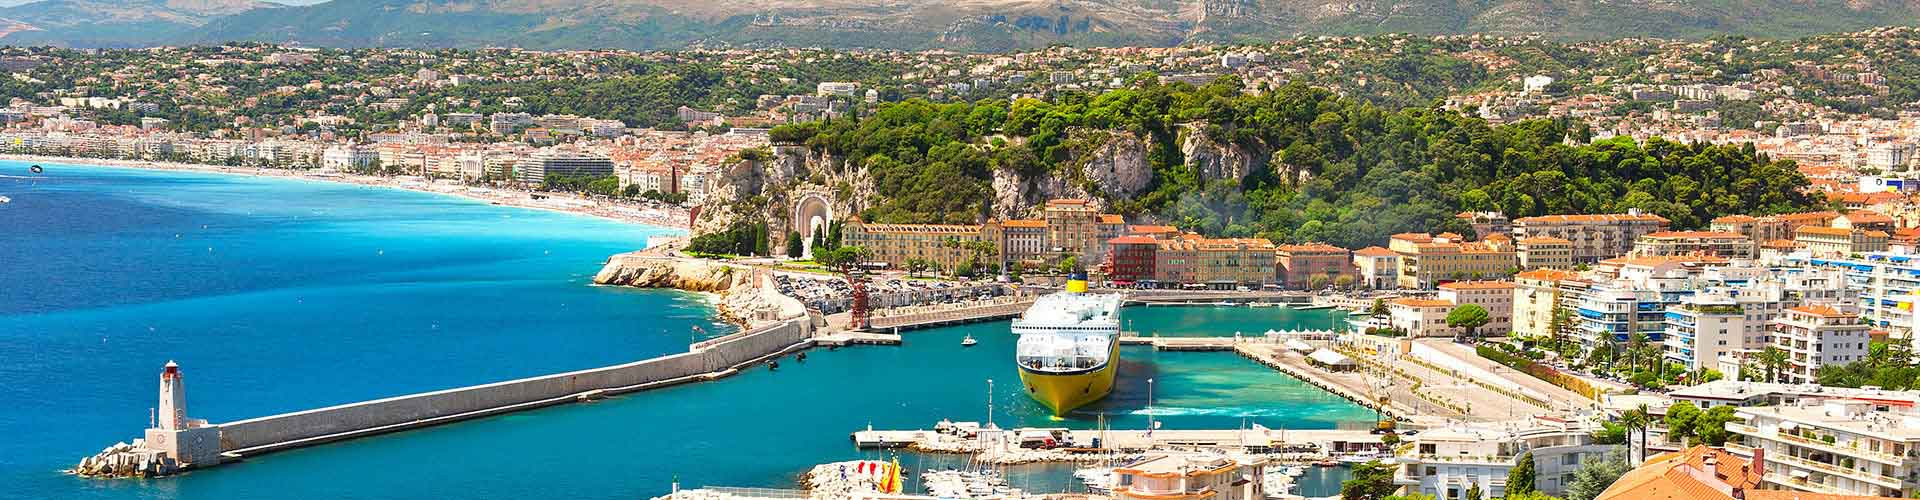 Nice – Hostels in Nice. Maps for Nice, Photos and Reviews for each hostel in Nice.